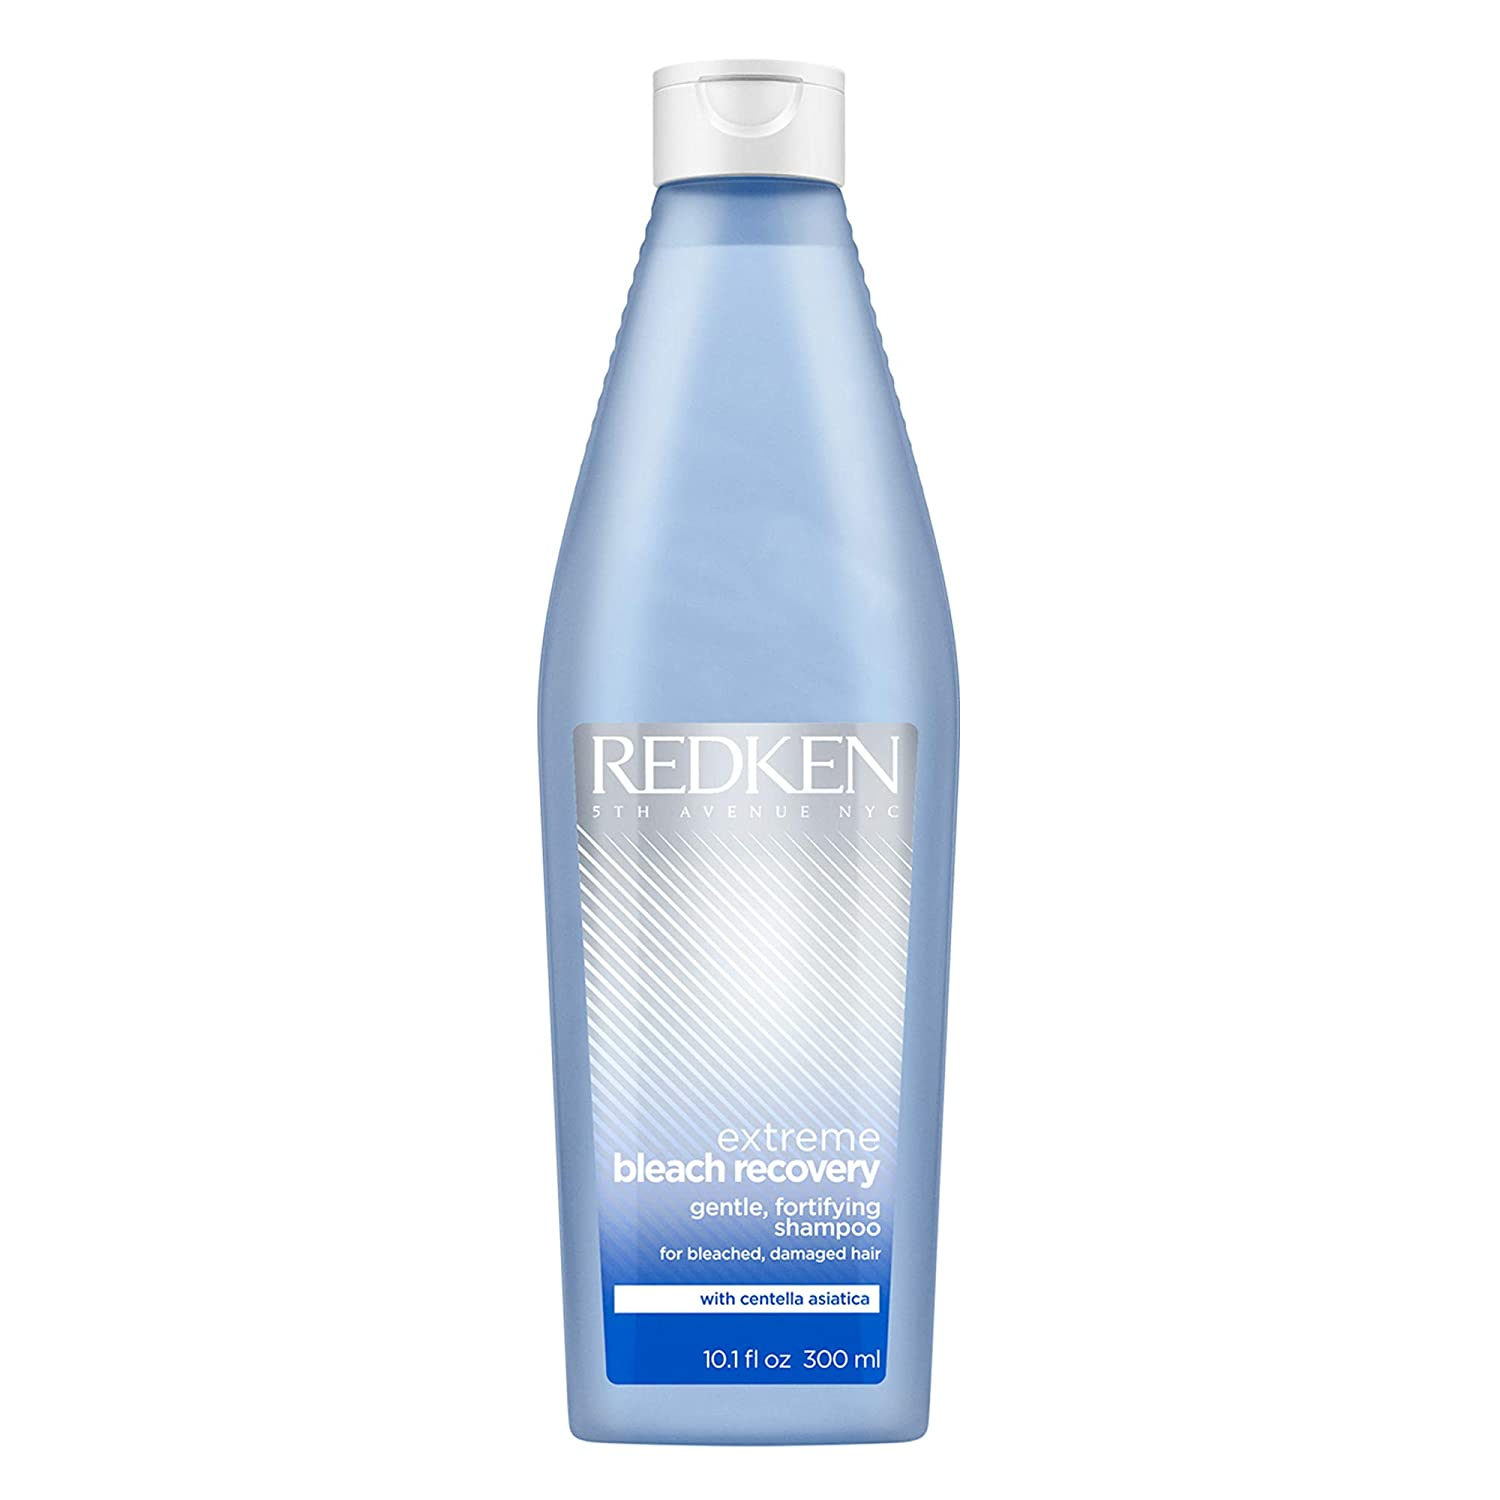 Redken Extreme Bleach Recovery Shampoo   For Bleached Hair   Restores Strength, Softness & Shine   Silicone Free